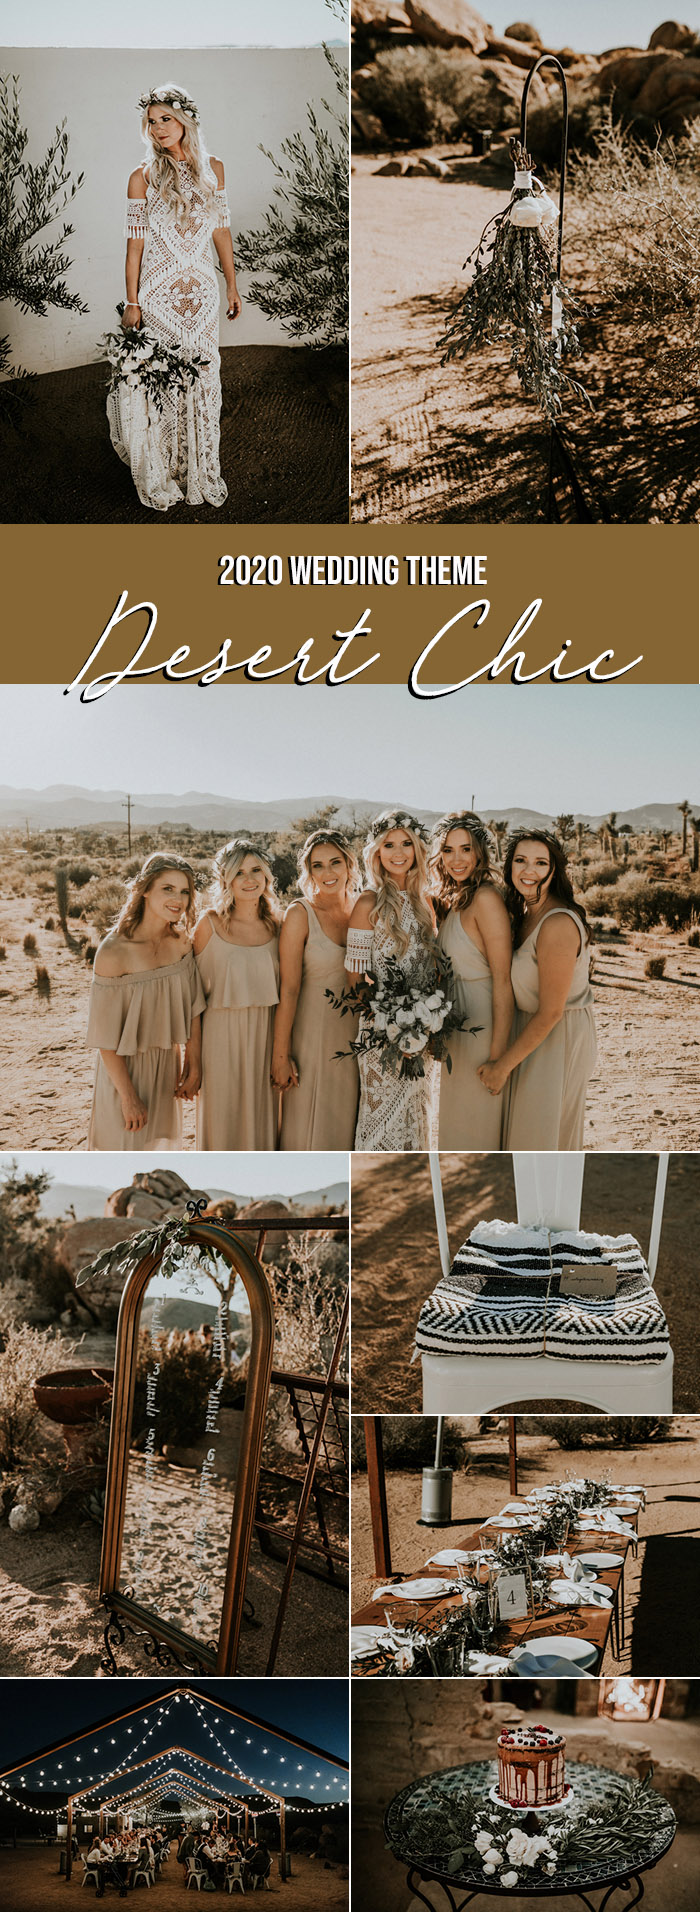 6 Wedding Themes That are Trending in 2020 | Junebug Weddings